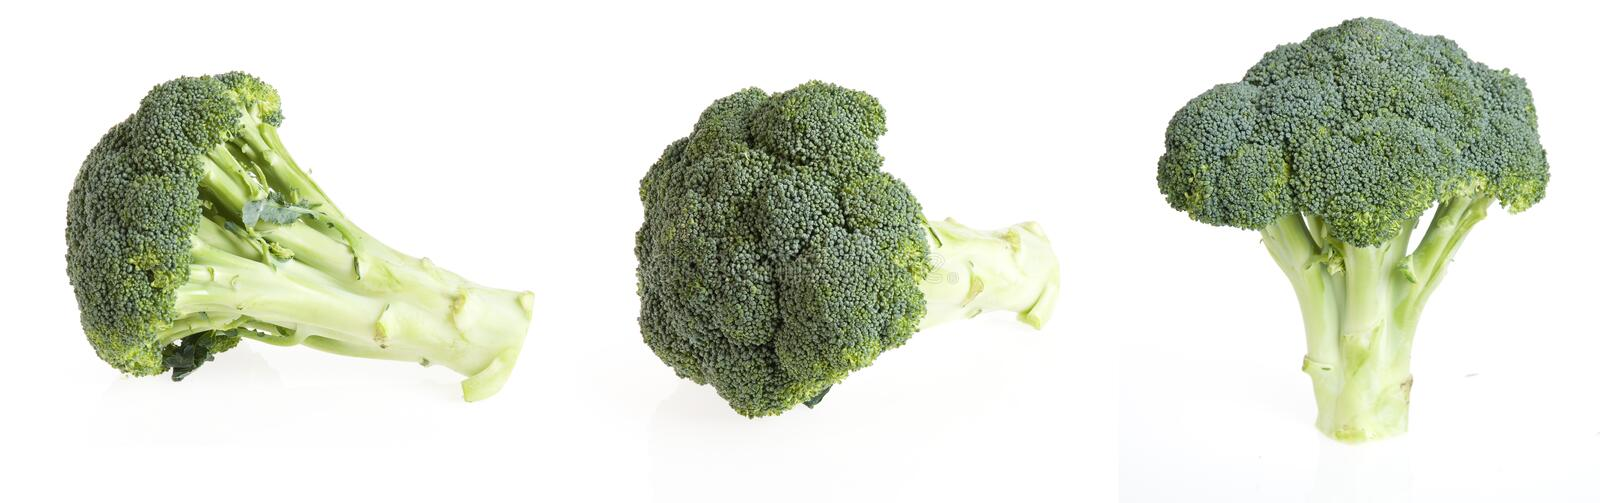 Download Isolated pieces of brocoli stock image. Image of lunch - 18132173